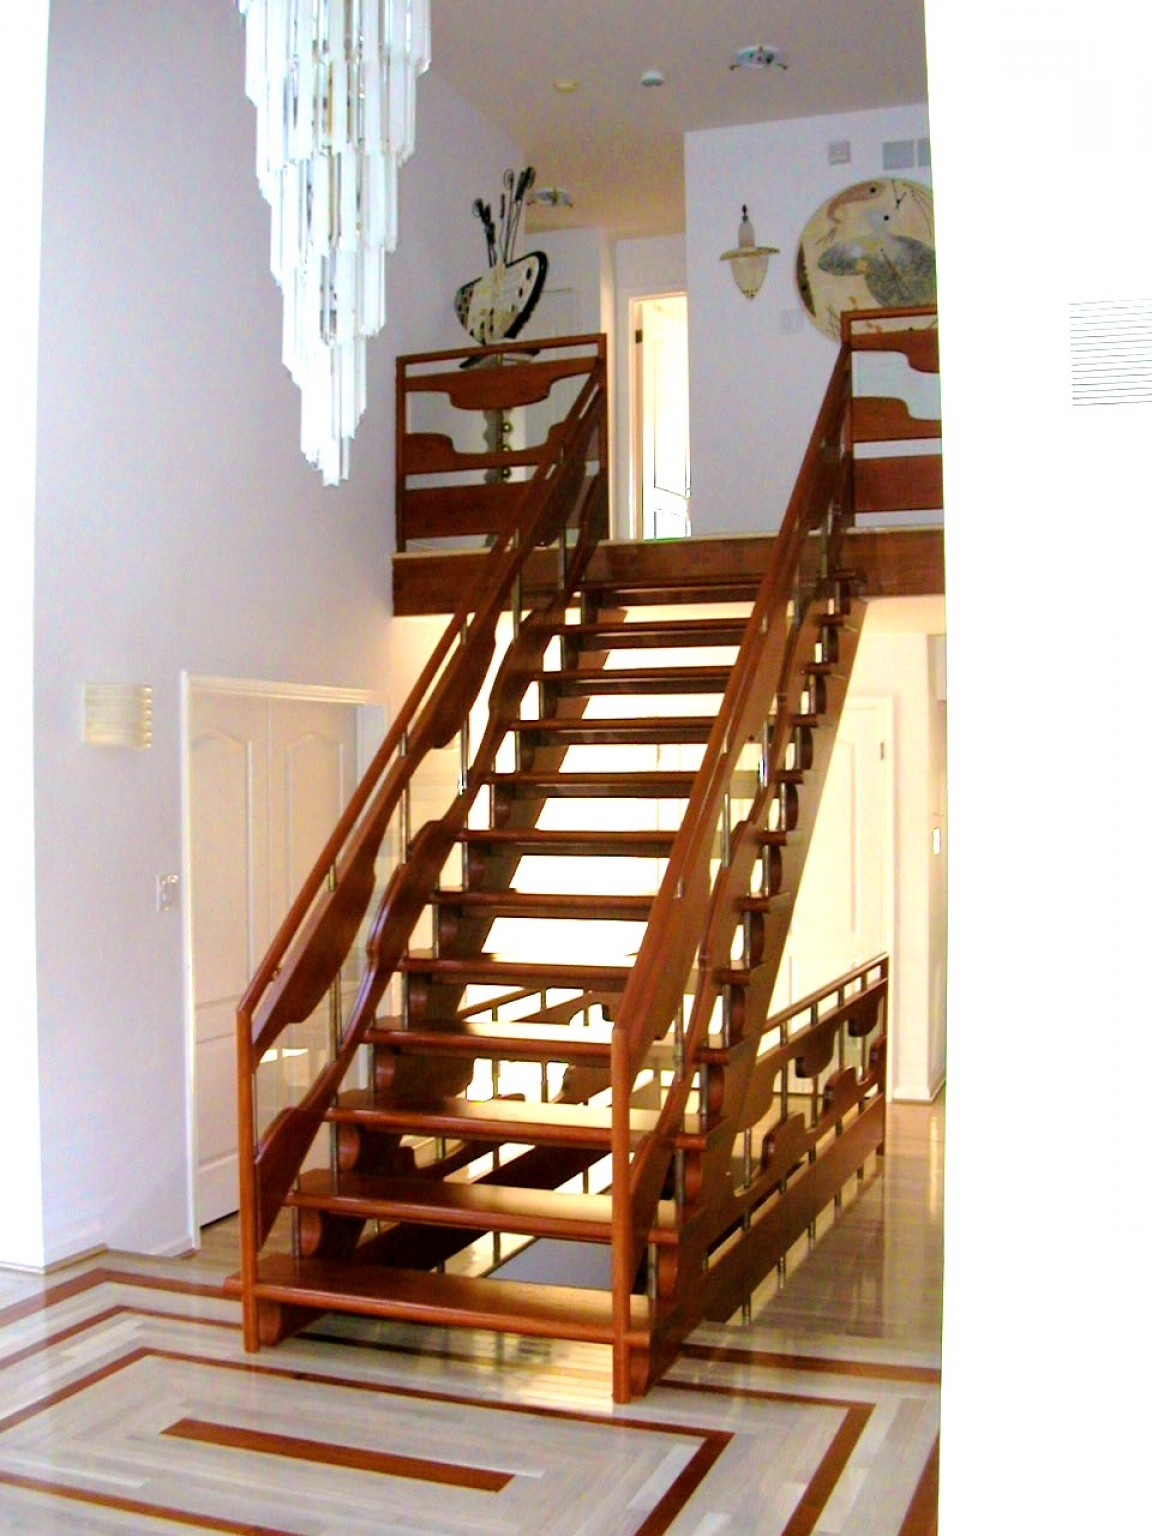 appealing-wooden-stairs-ideas-for-interior-and-exterior-modern-staircase-railing-designs-stairs